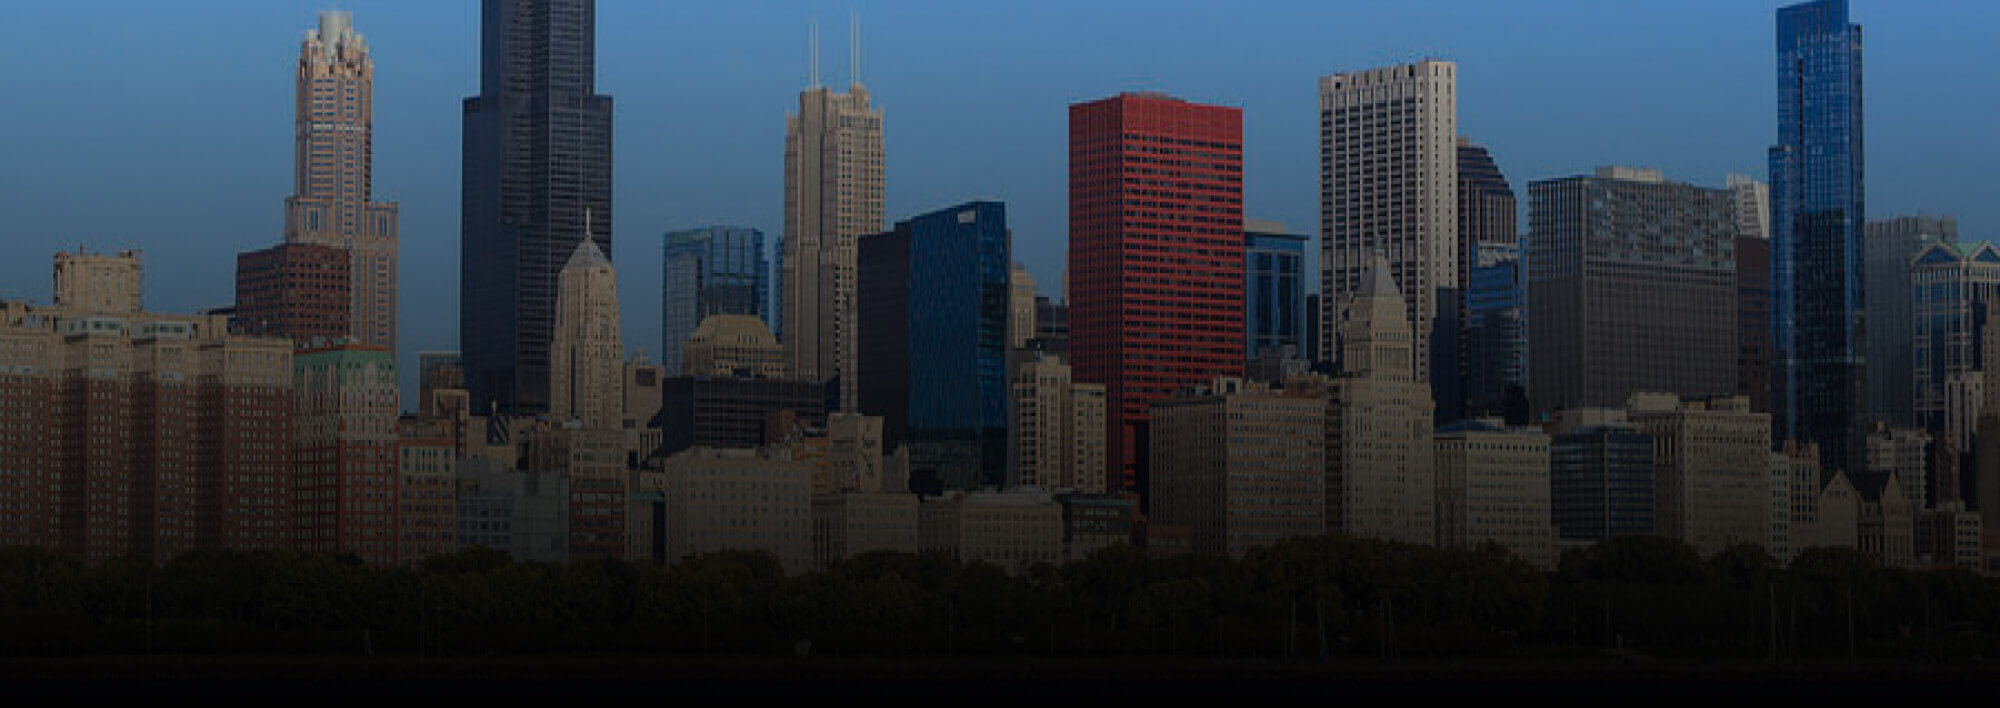 Chicago Order Fulfillment Services